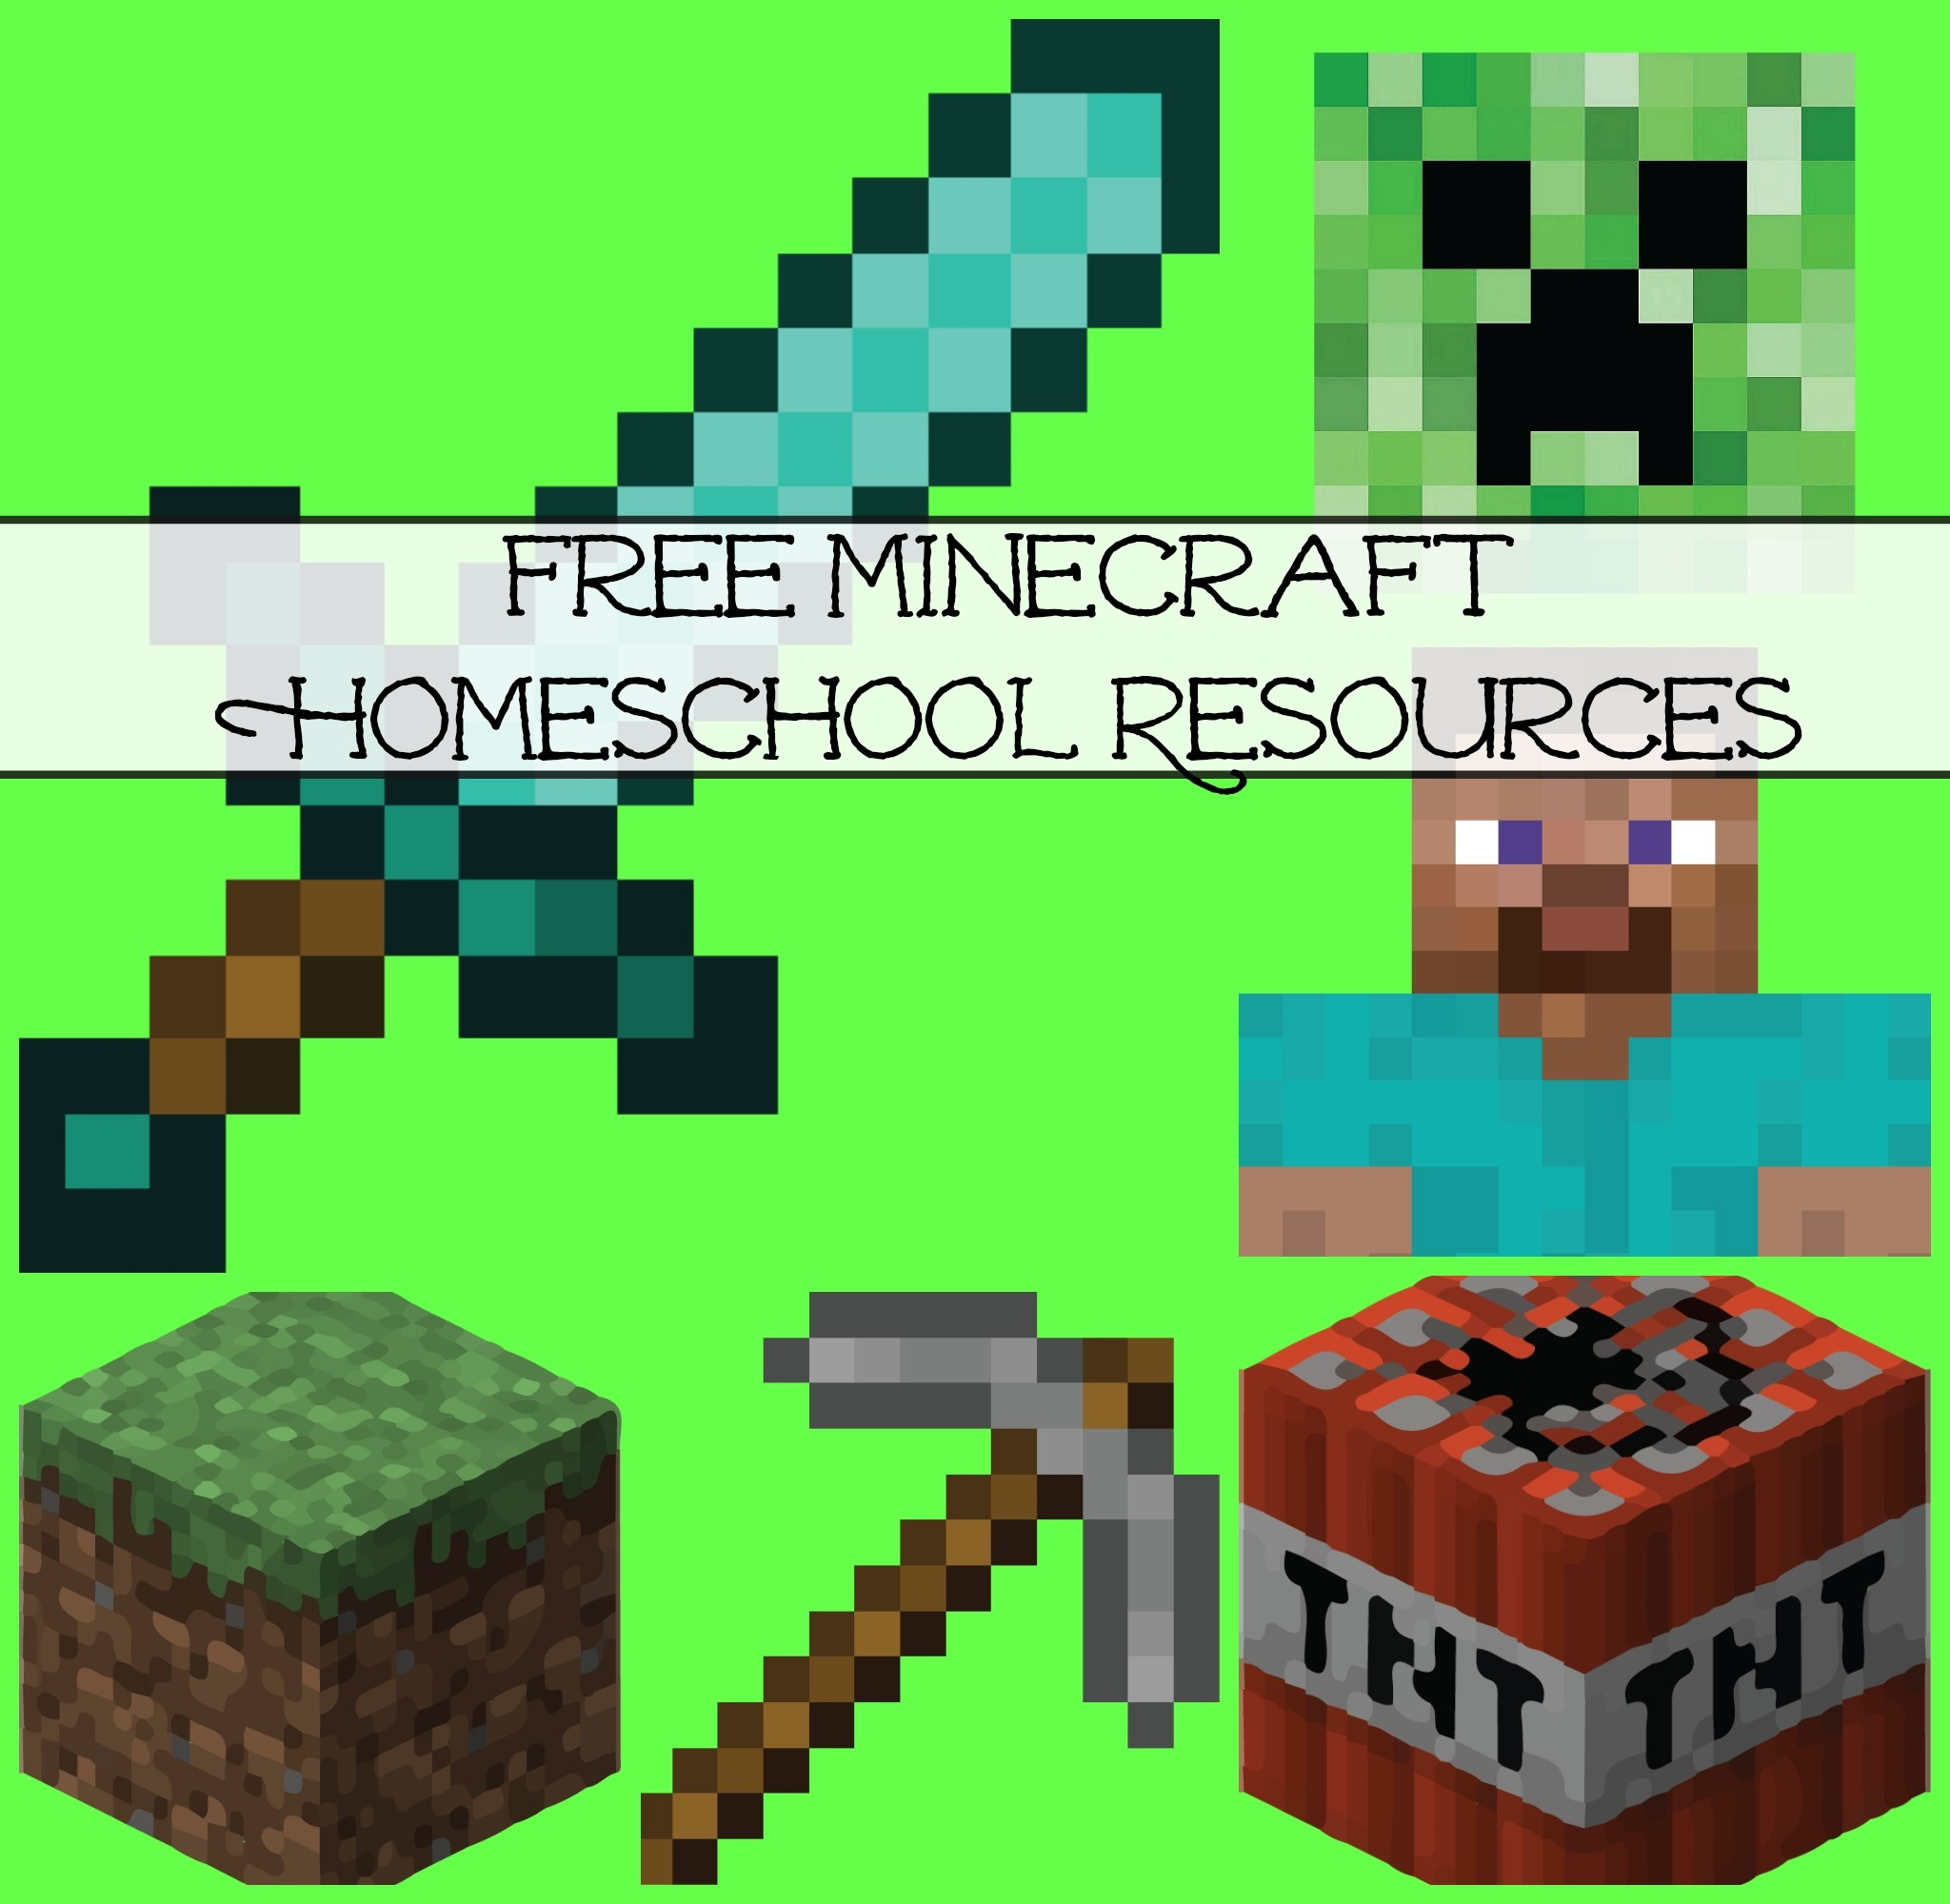 Free Minecraft Homeschool Resources: Printables, Crafts, Snacks - Free Printable Minecraft Activity Pages